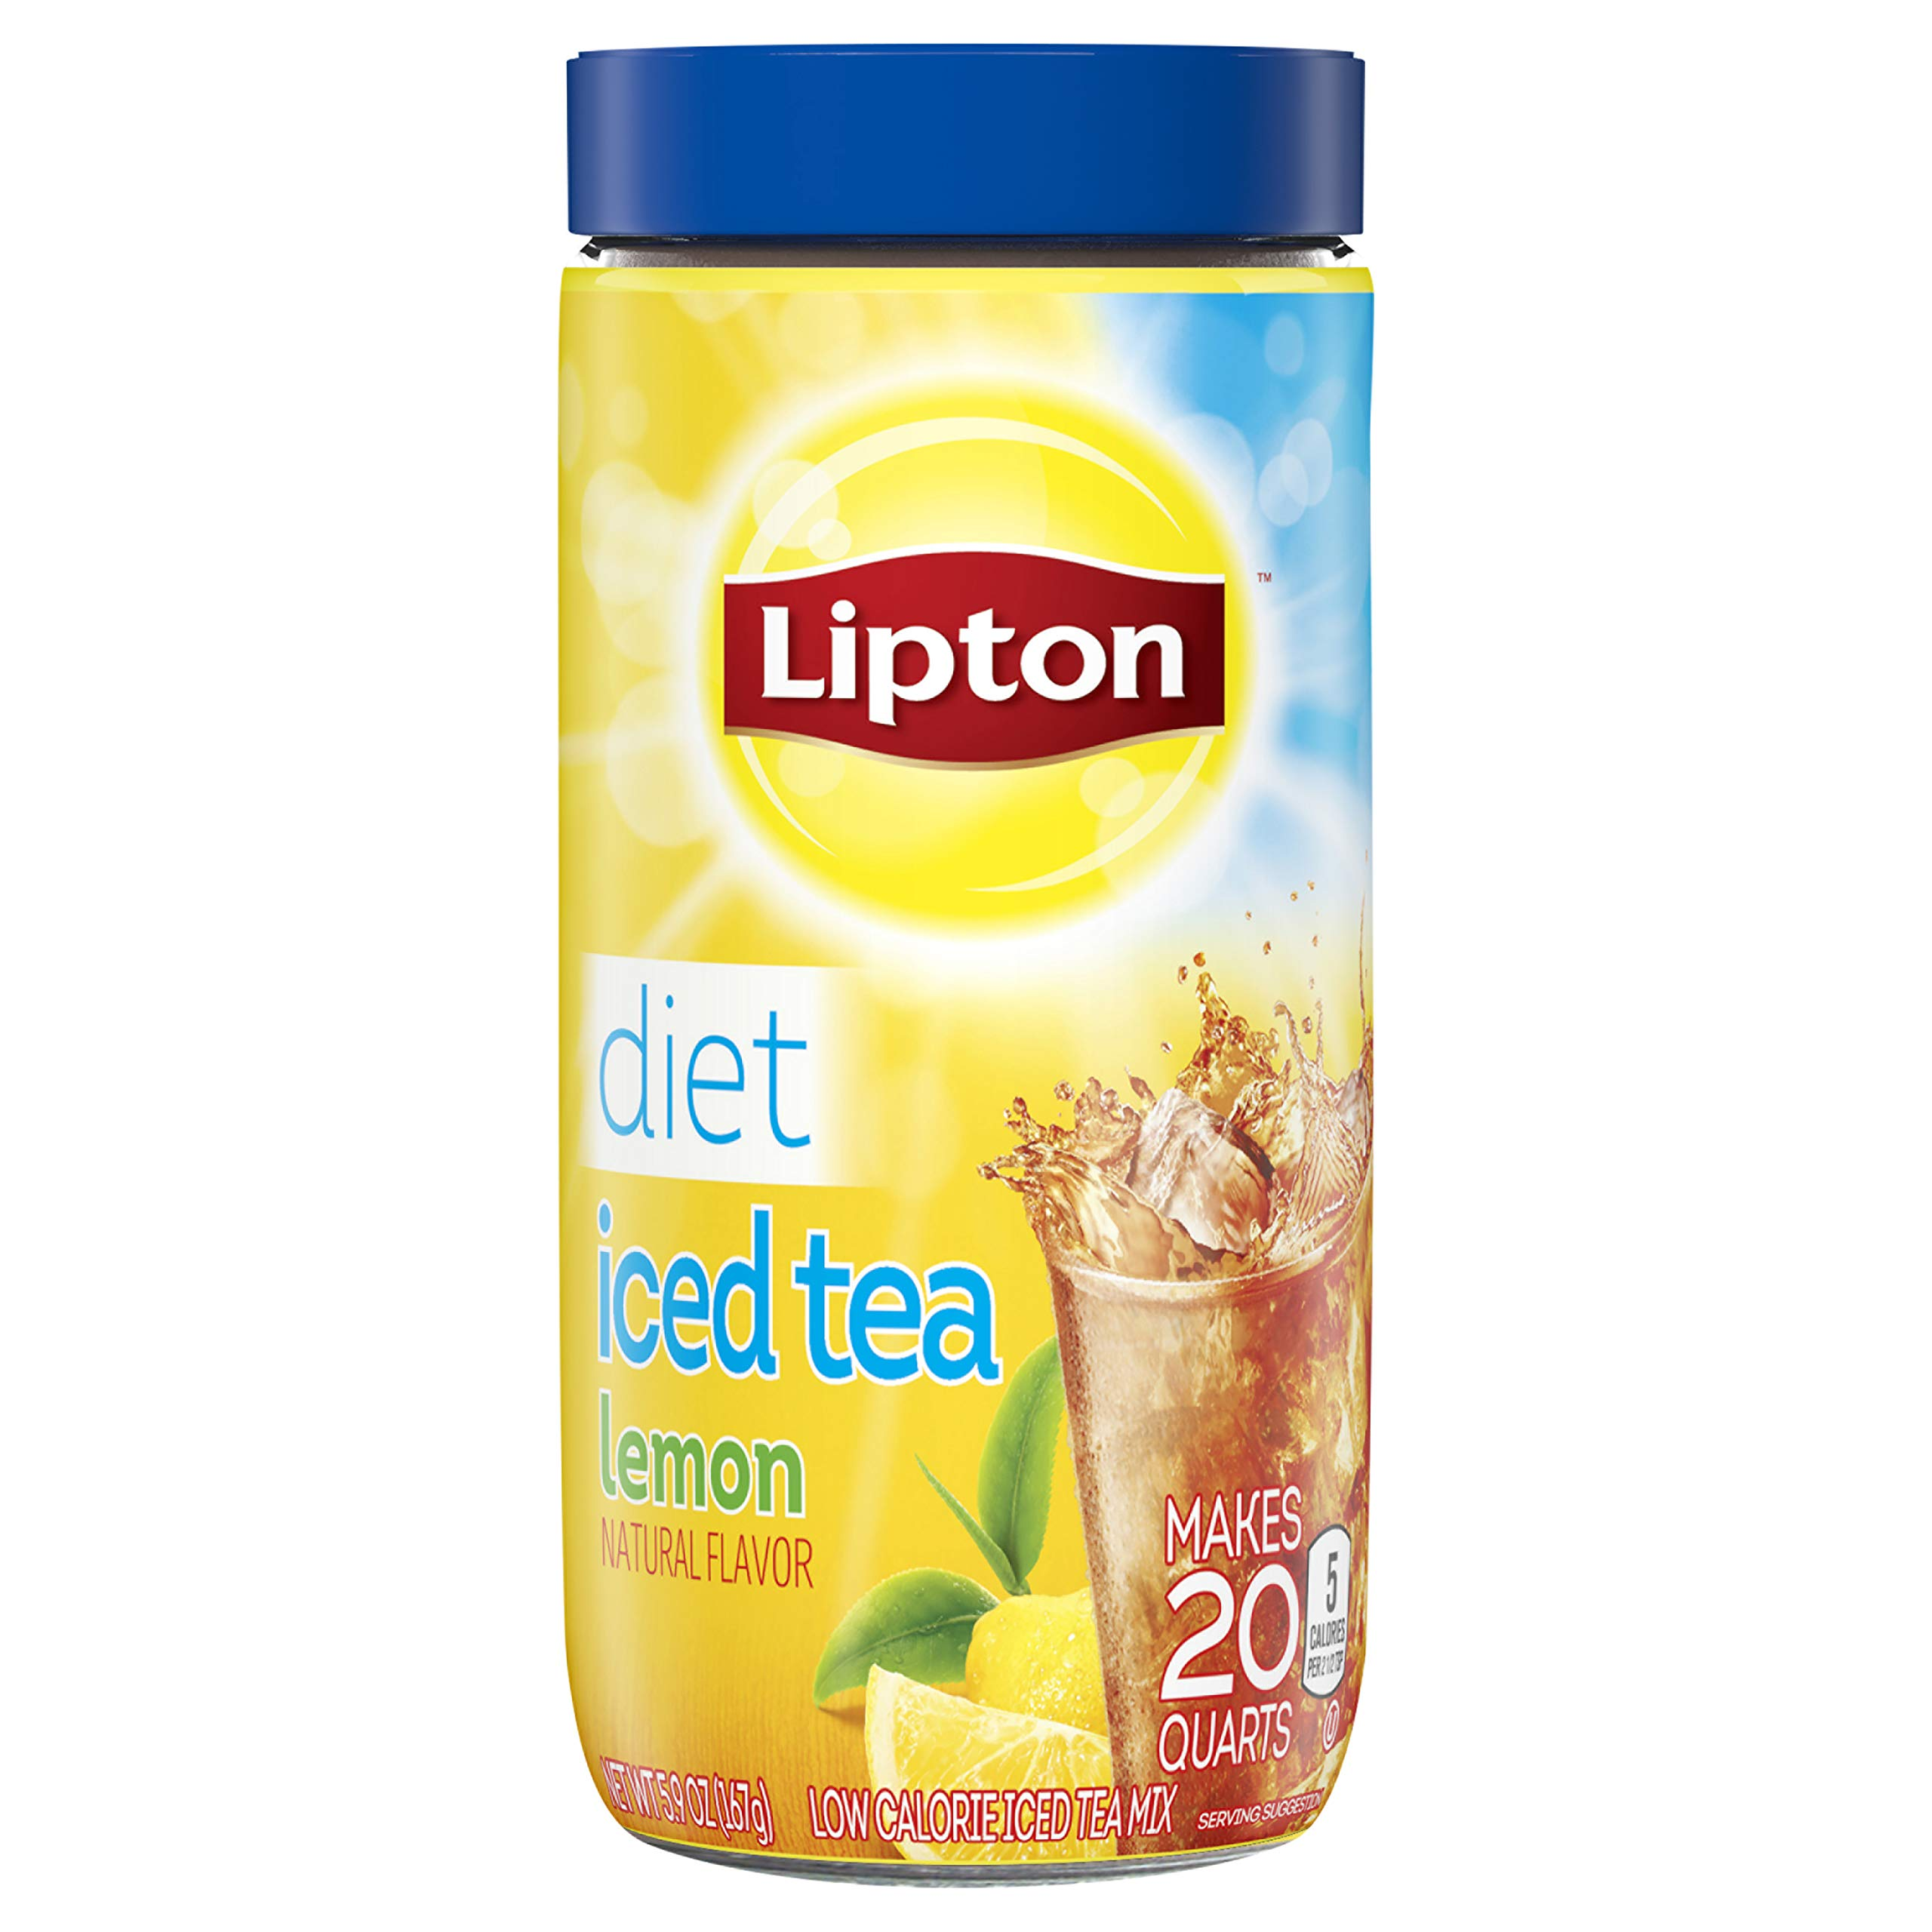 Lipton Black Iced Tea Mix, Diet Lemon 20 qt, pack of 6